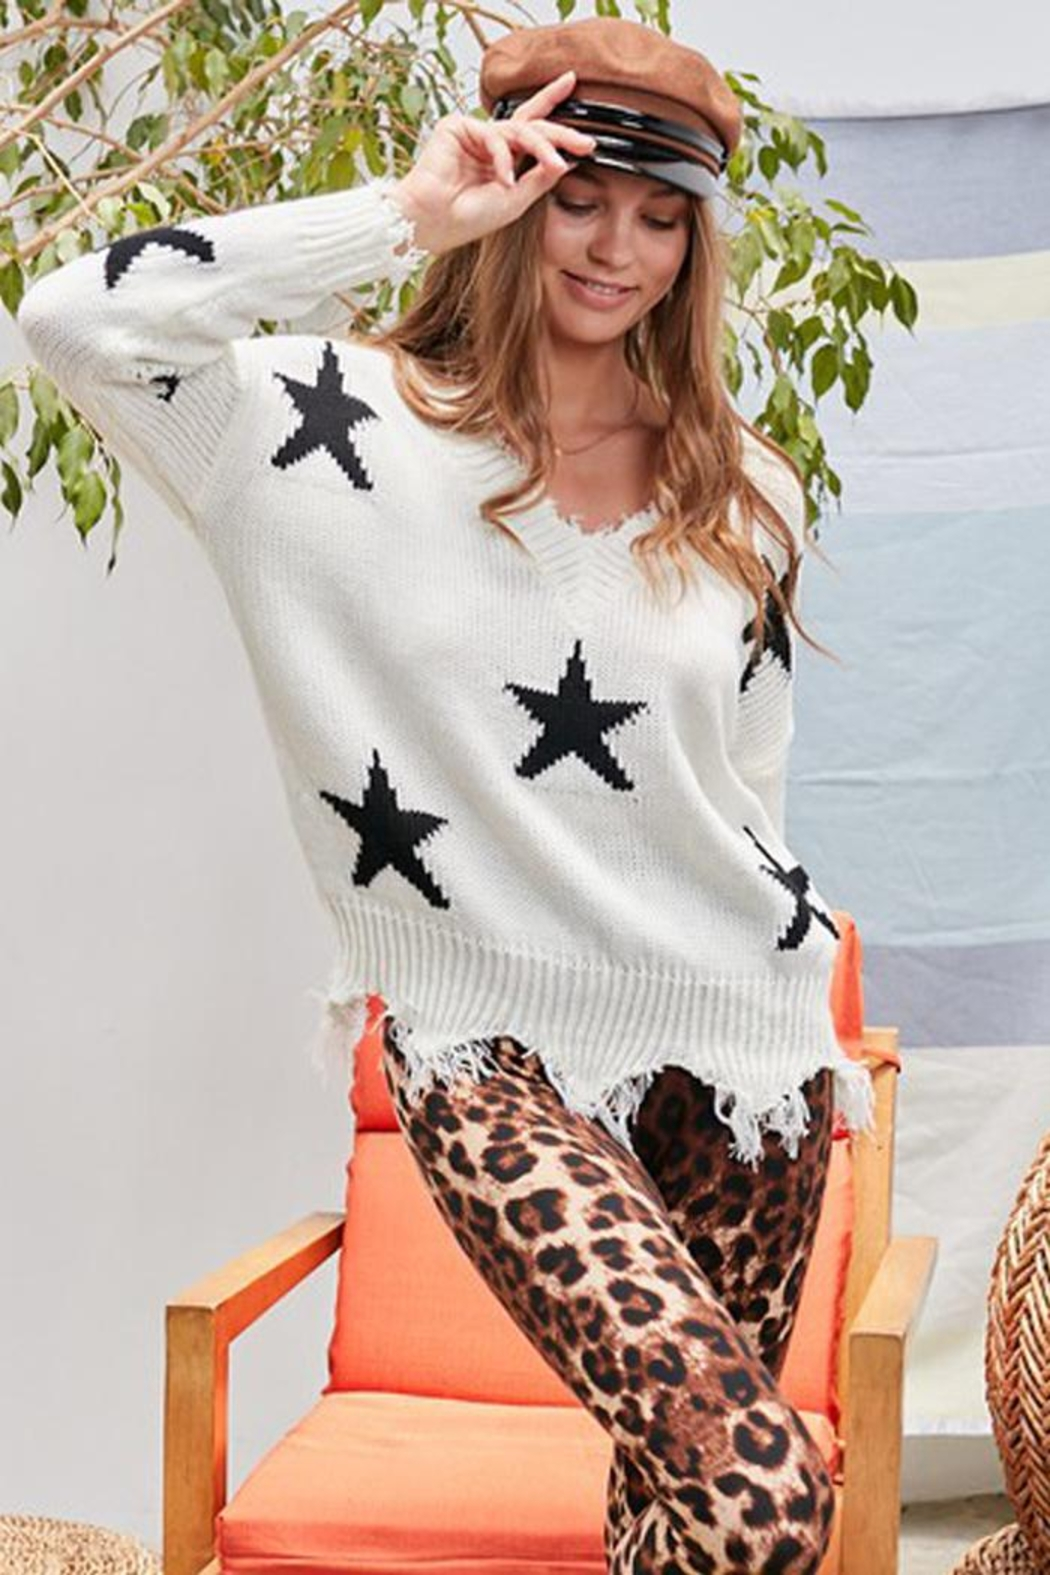 Main Strip Distressed Frayed Star Print V Neck Knit Sweater - Main Image